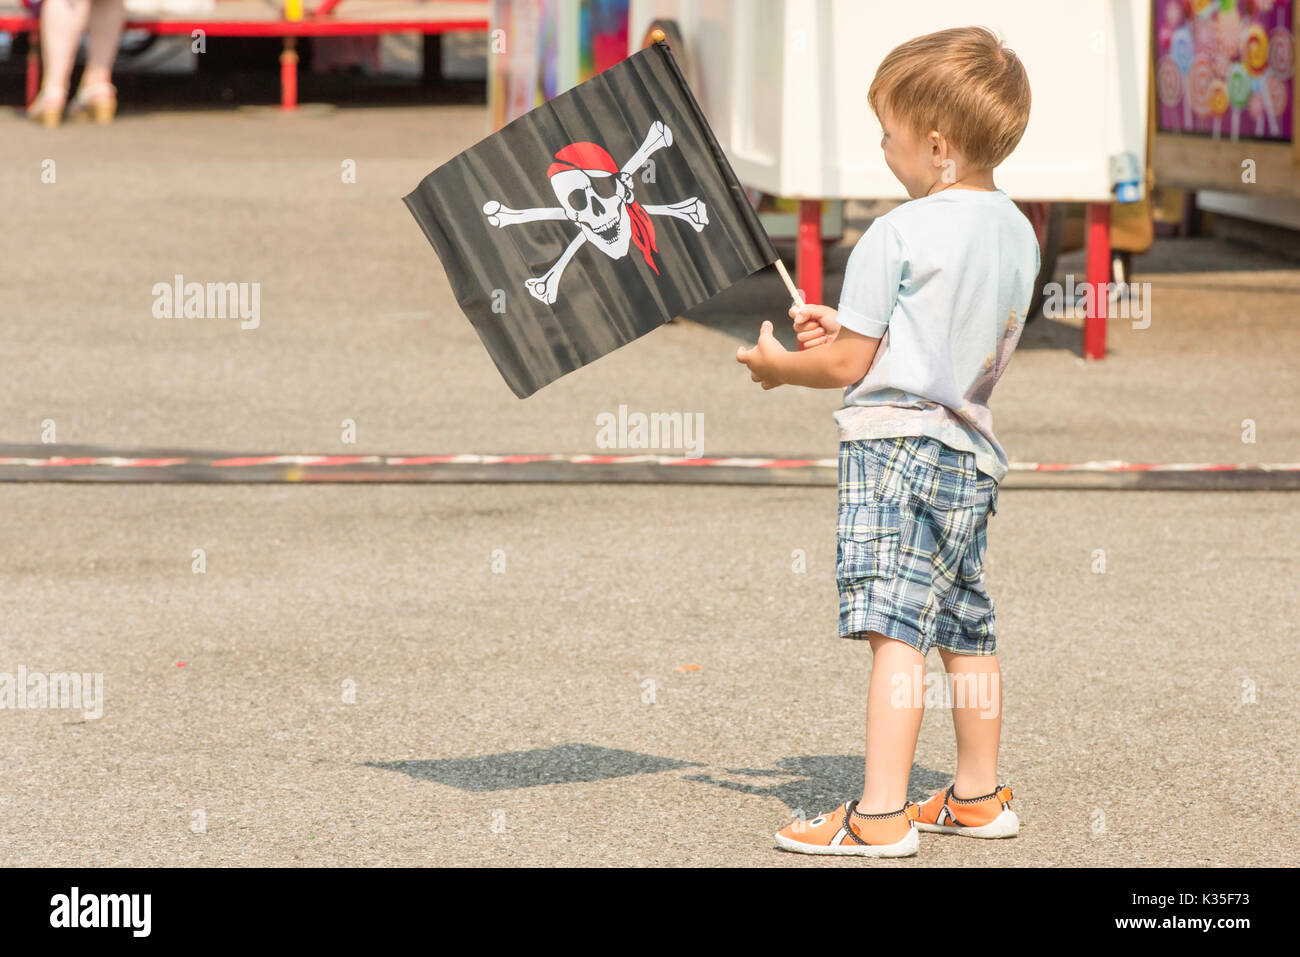 Portrait of a small boy holding a 'Skull and crossbones' flag. Stock Photo